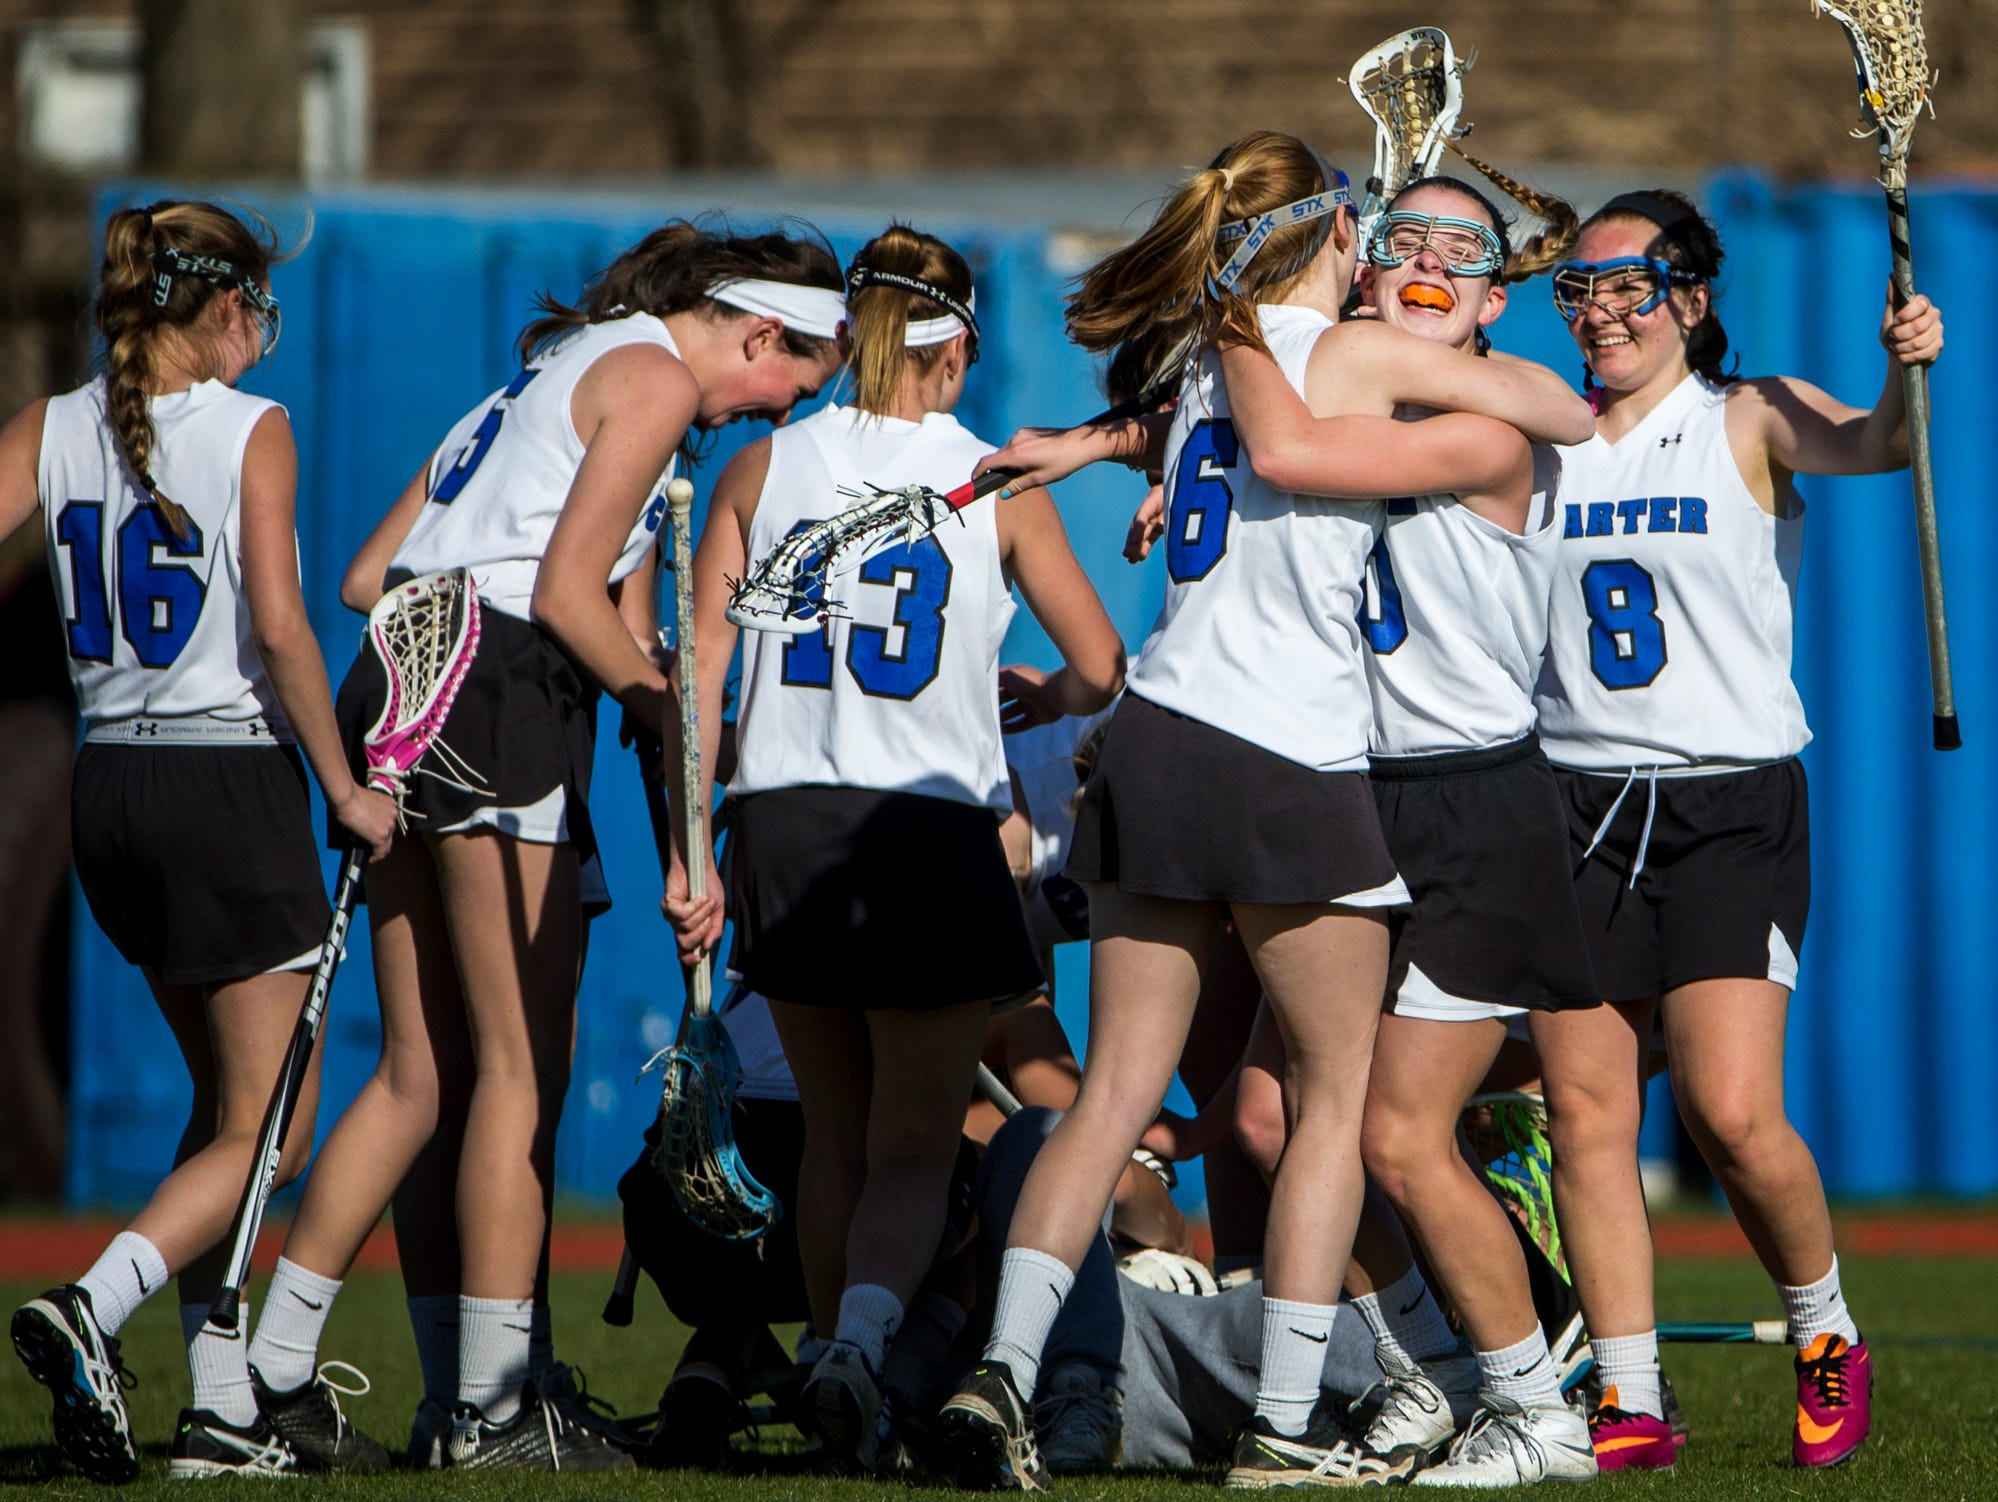 Charter players celebrate after defeating Tower Hill 10-9 win at Charter School of Wilmington on Tuesday afternoon.